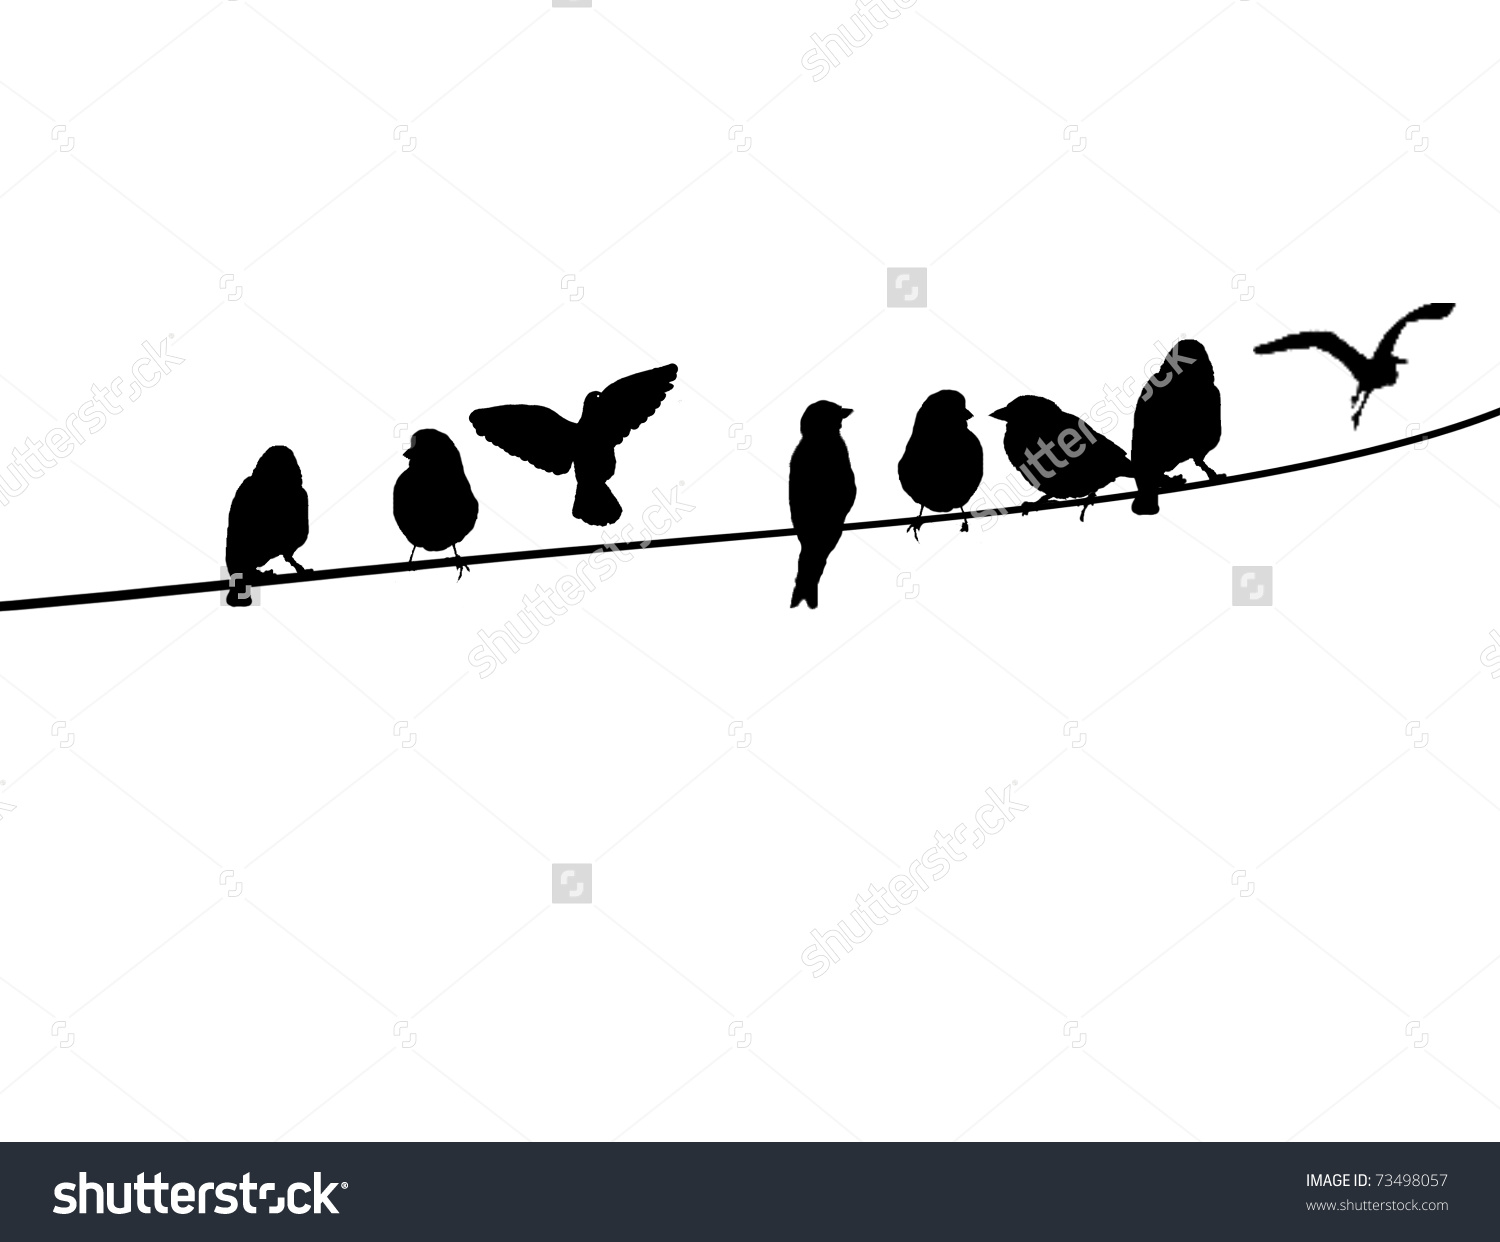 Wire Silhouette at GetDrawings.com | Free for personal use Wire ...